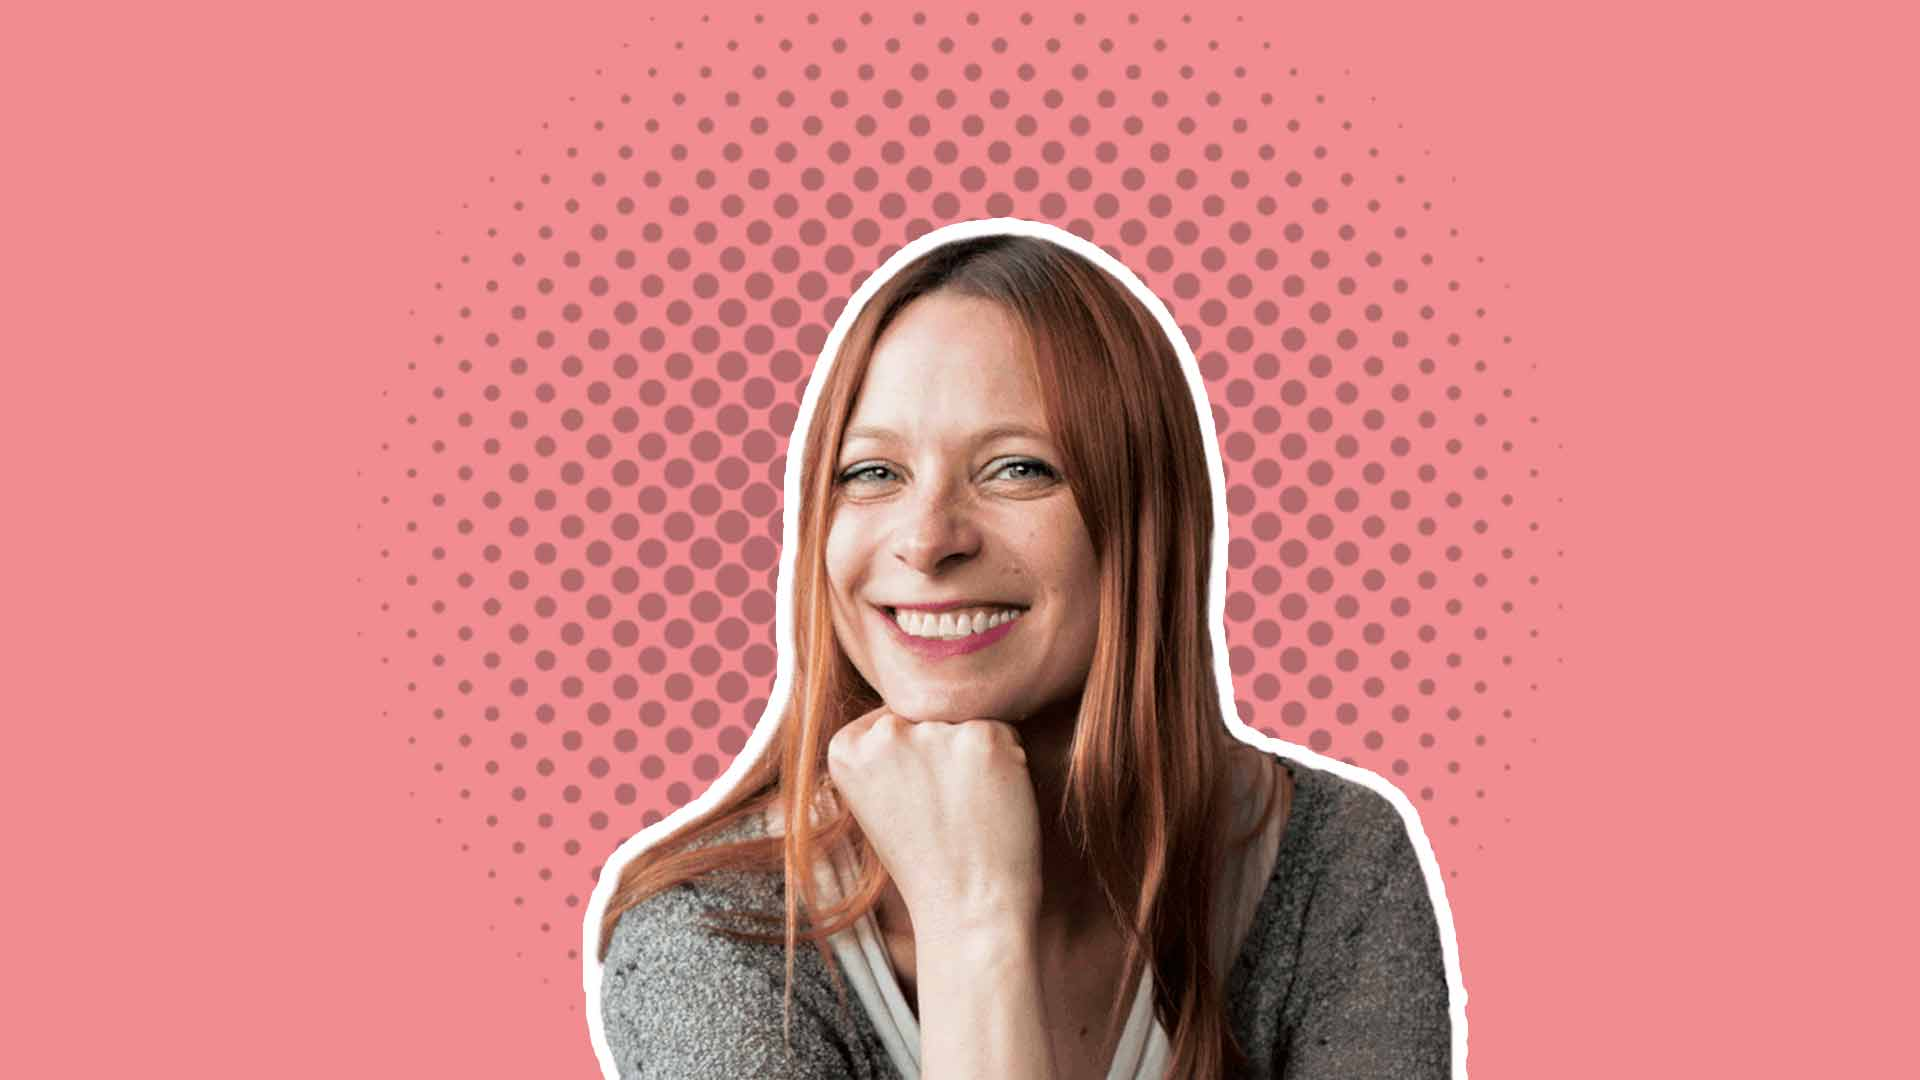 Vibeke Foss's advices as a Business Consultant and Entrepreneur